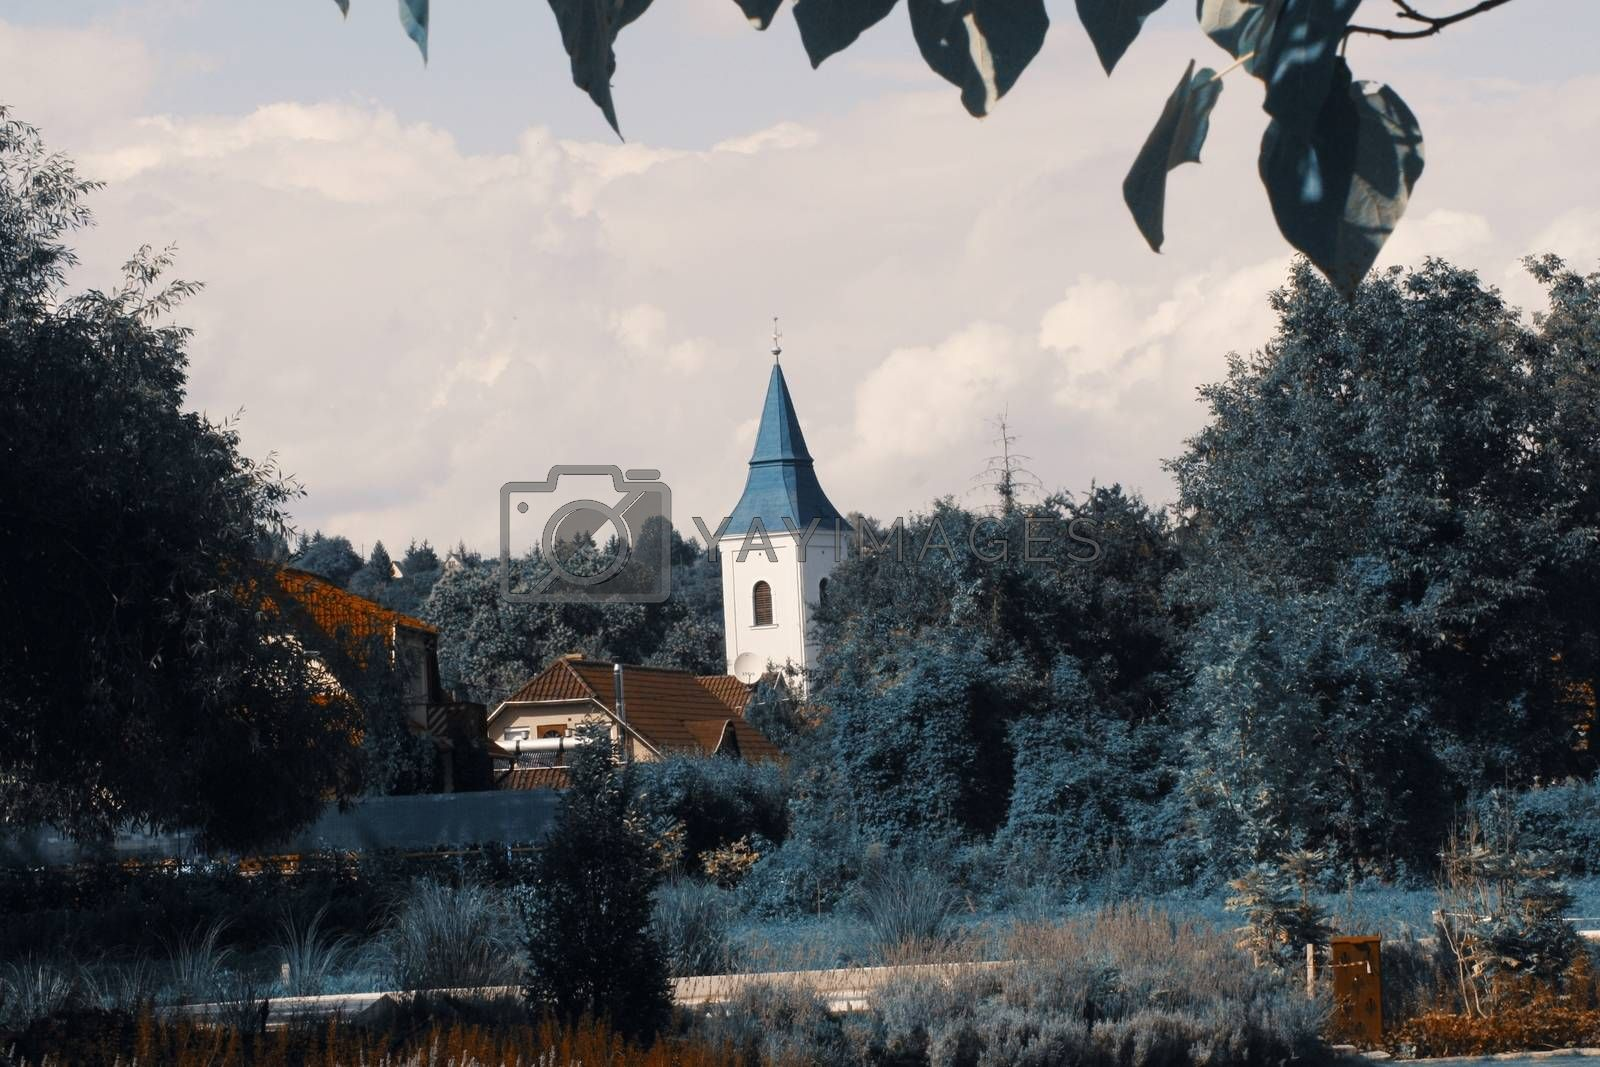 Royalty free image of A castle surrounded by trees by balage941